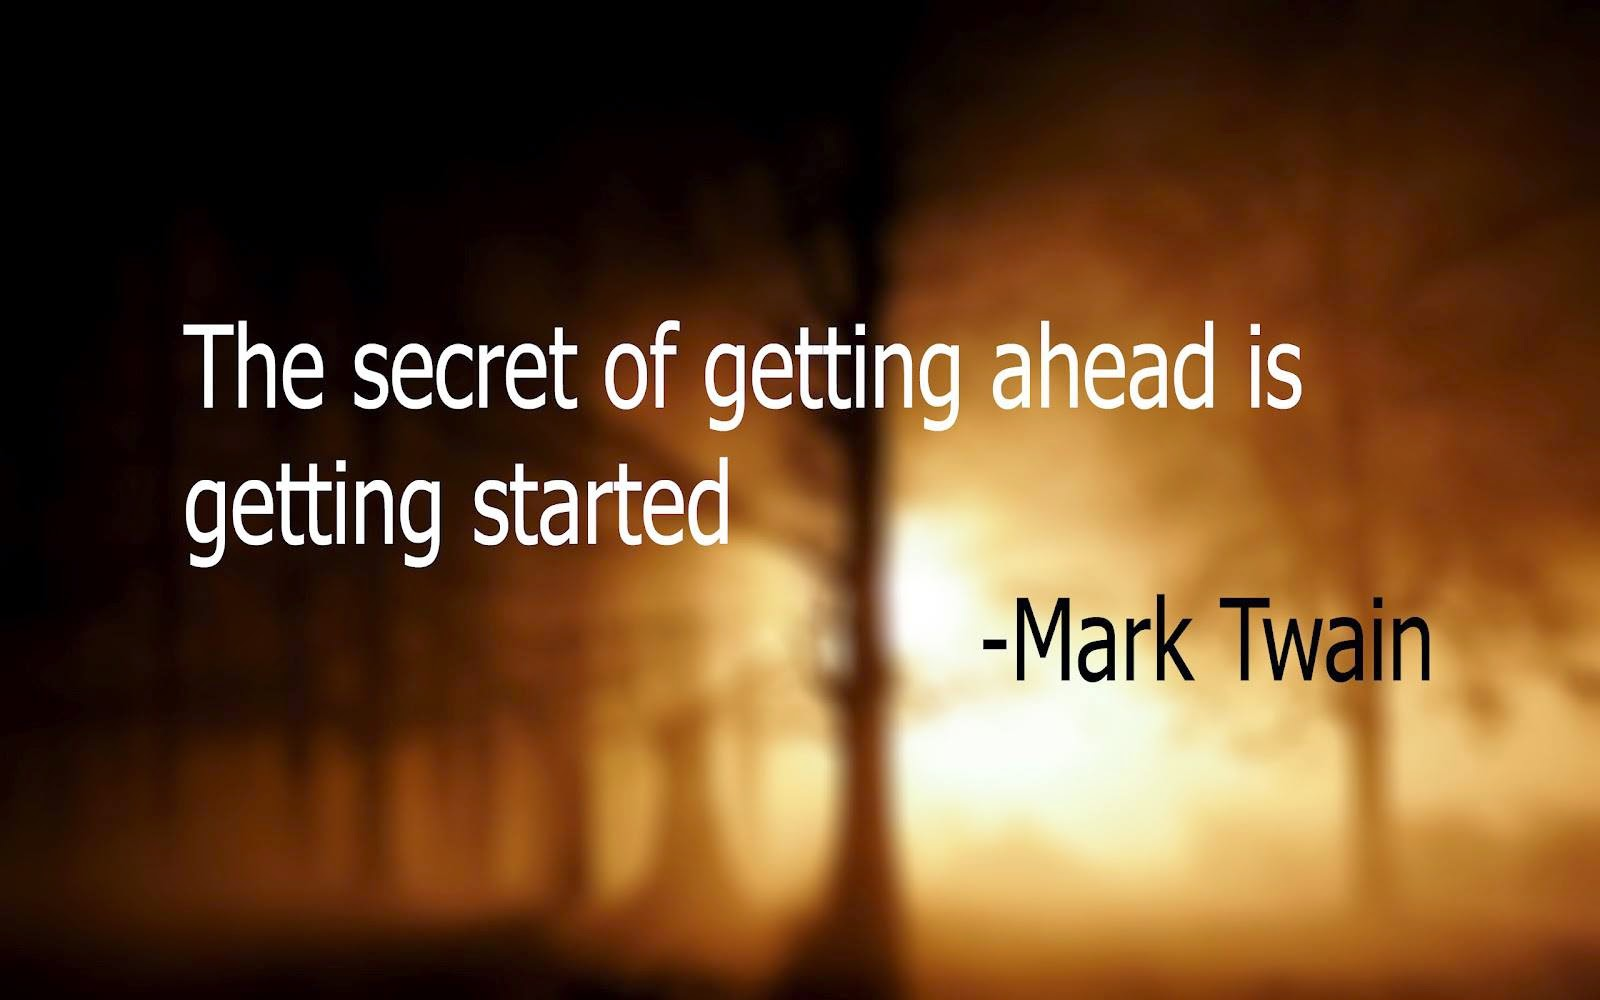 The Secret Quotes Best All In One Quotes The Secret Of Getting Ahead Is Getting